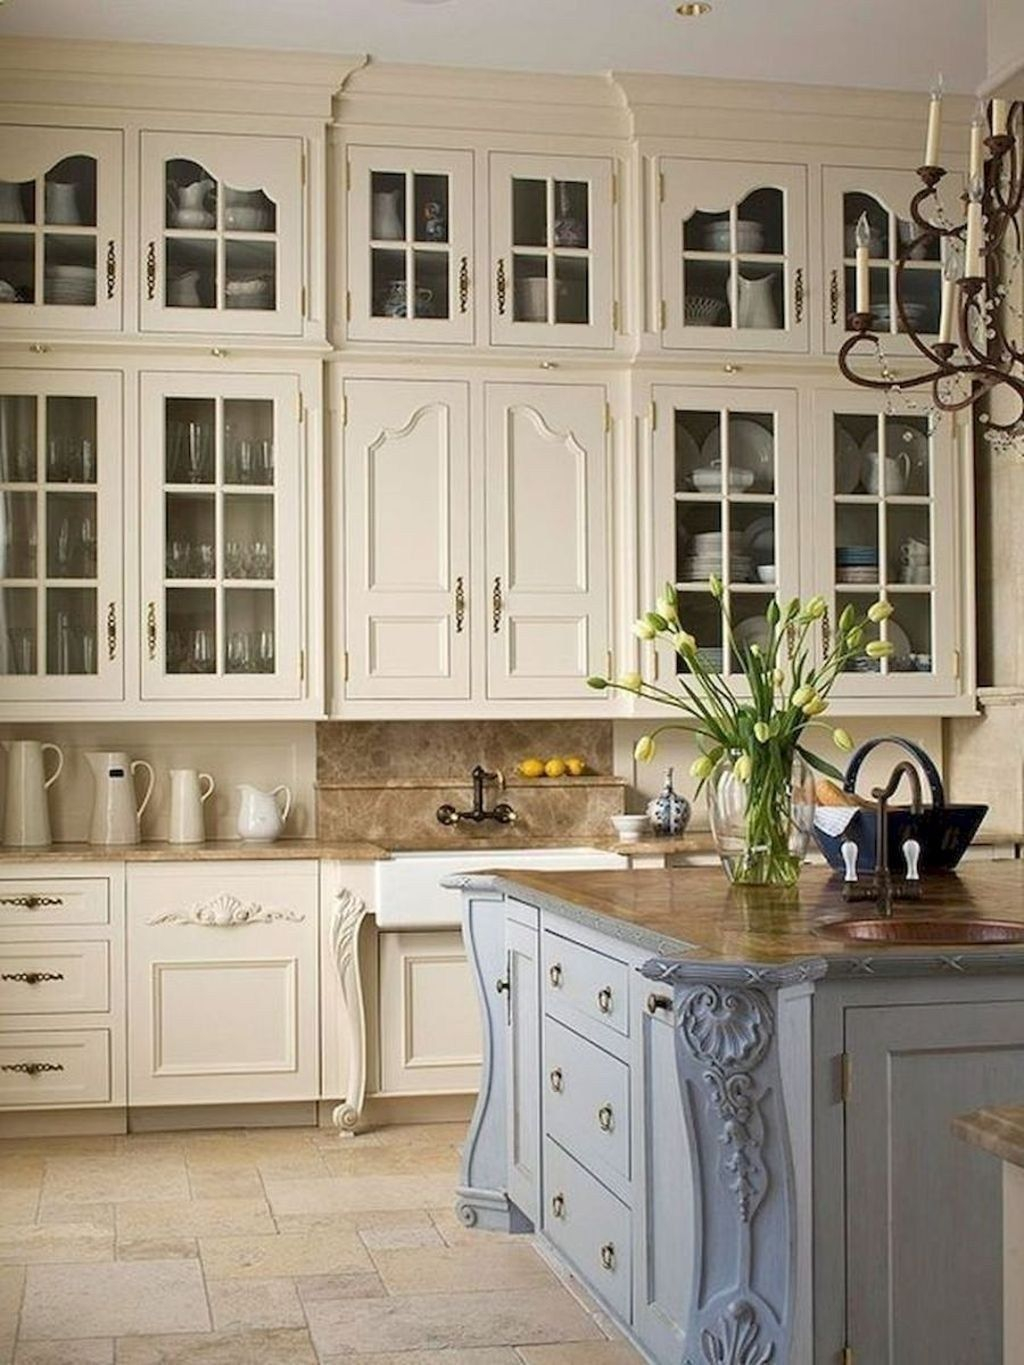 48 The Best French Country Style Kitchen Decor Ideas My New